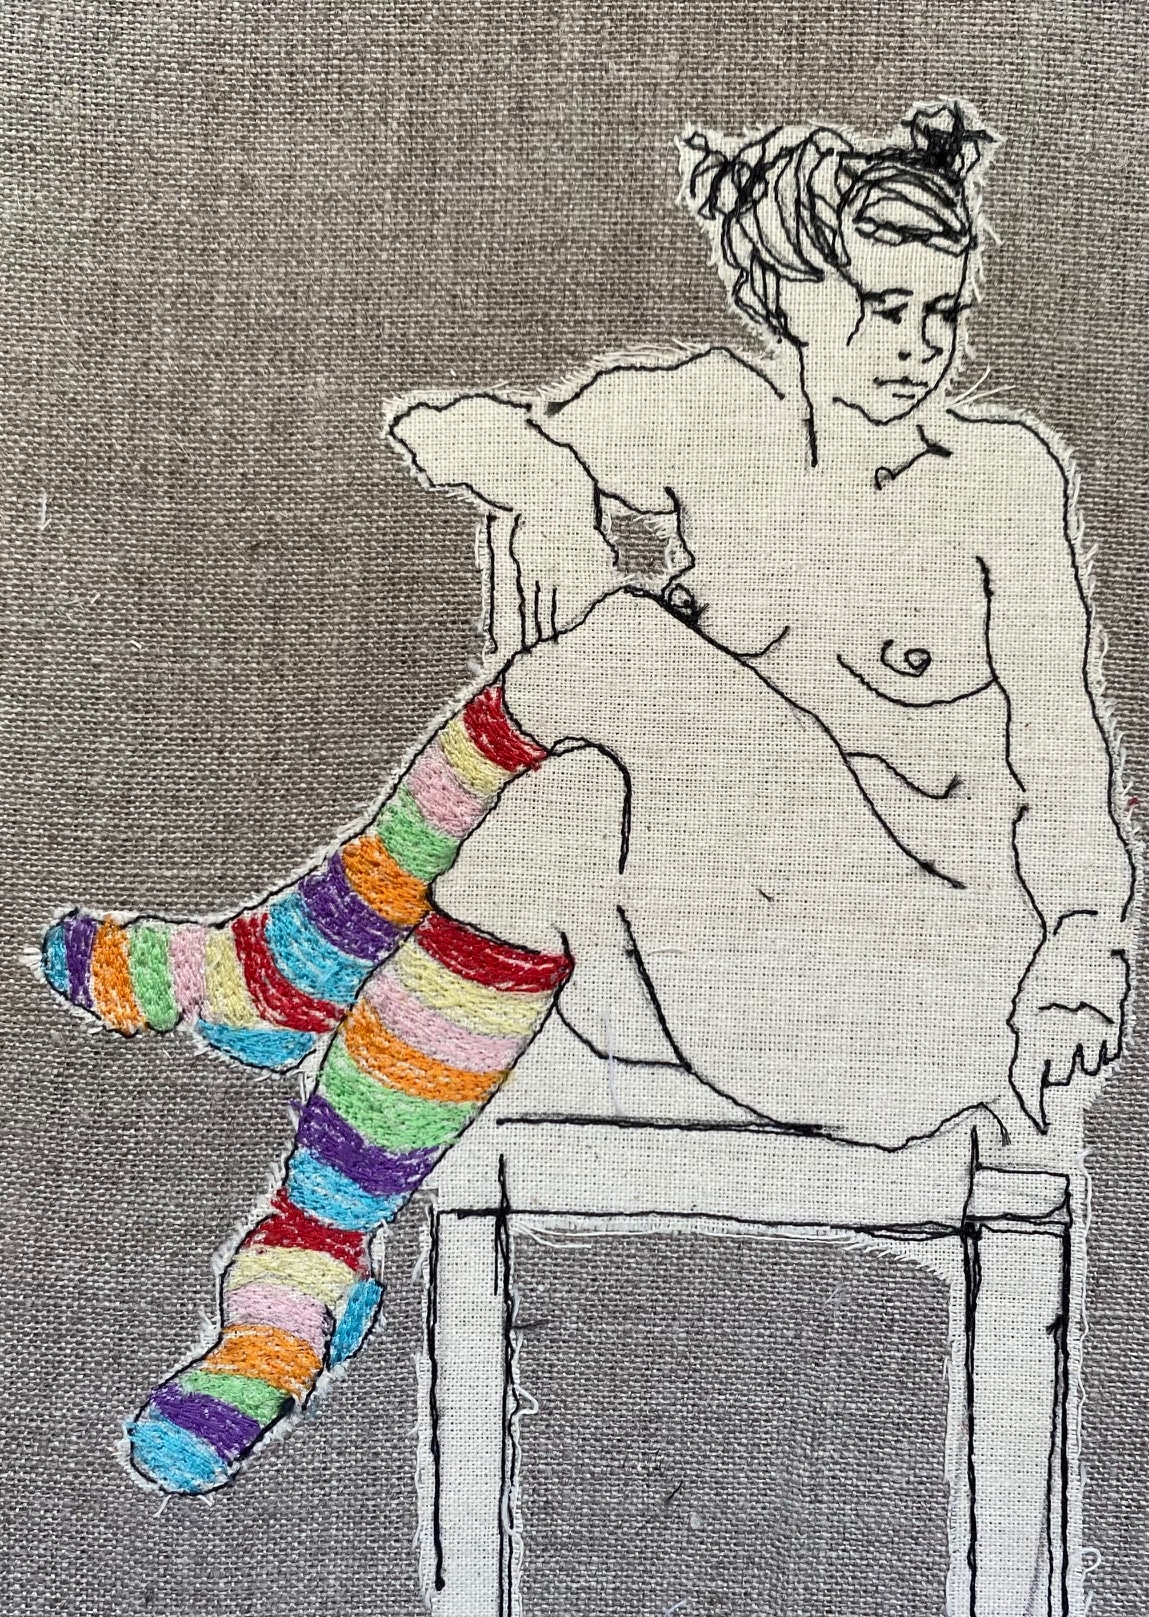 Ms Stripey Socks IV Embroidered Textile Artwork By  Juliet D Collins (Fitzroy)